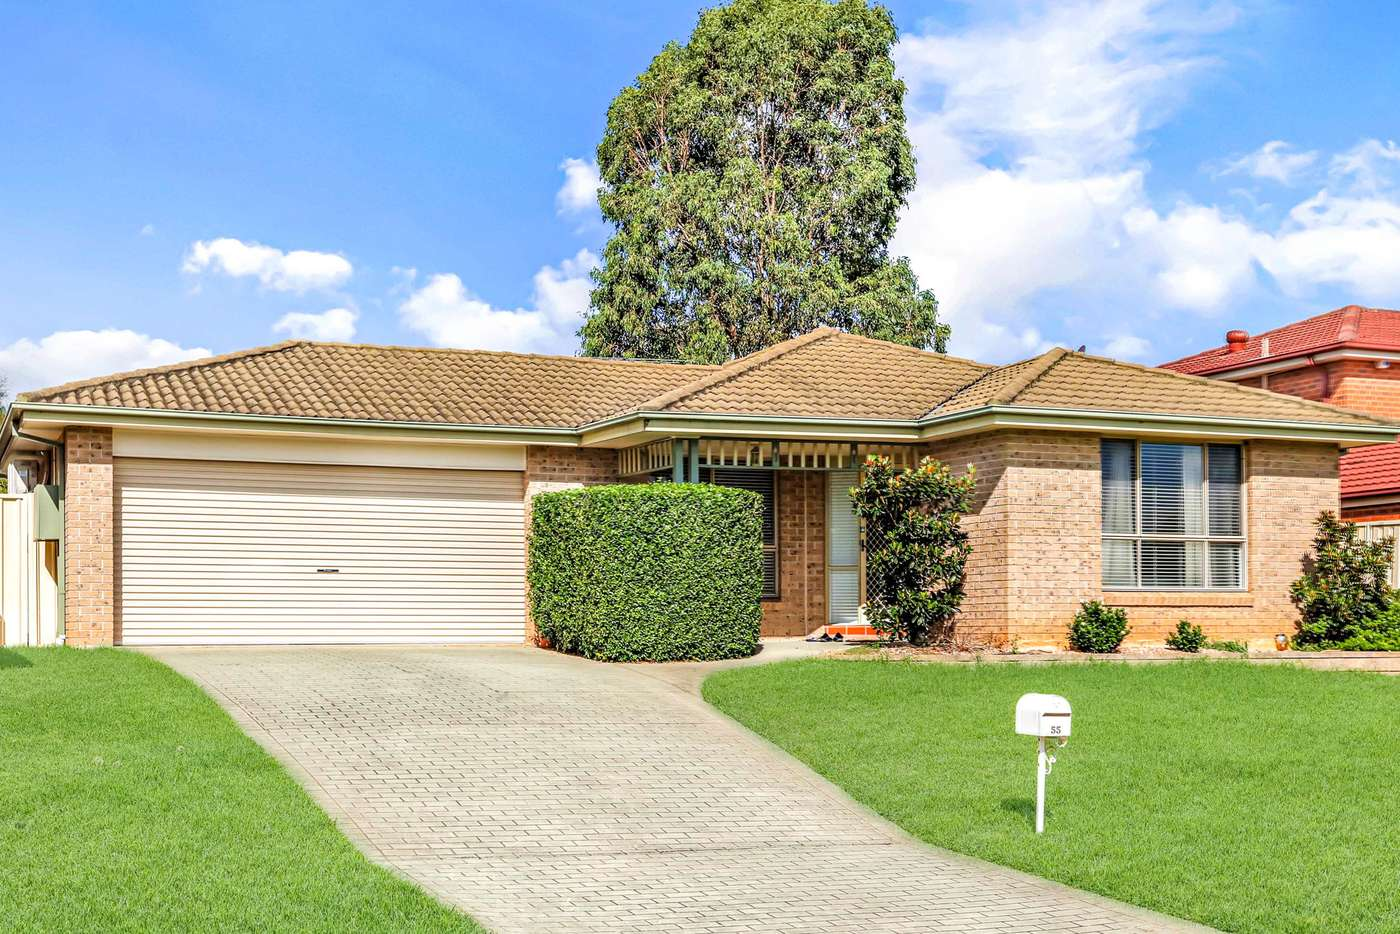 Main view of Homely house listing, 55 Ironbark Crescent, Blacktown NSW 2148